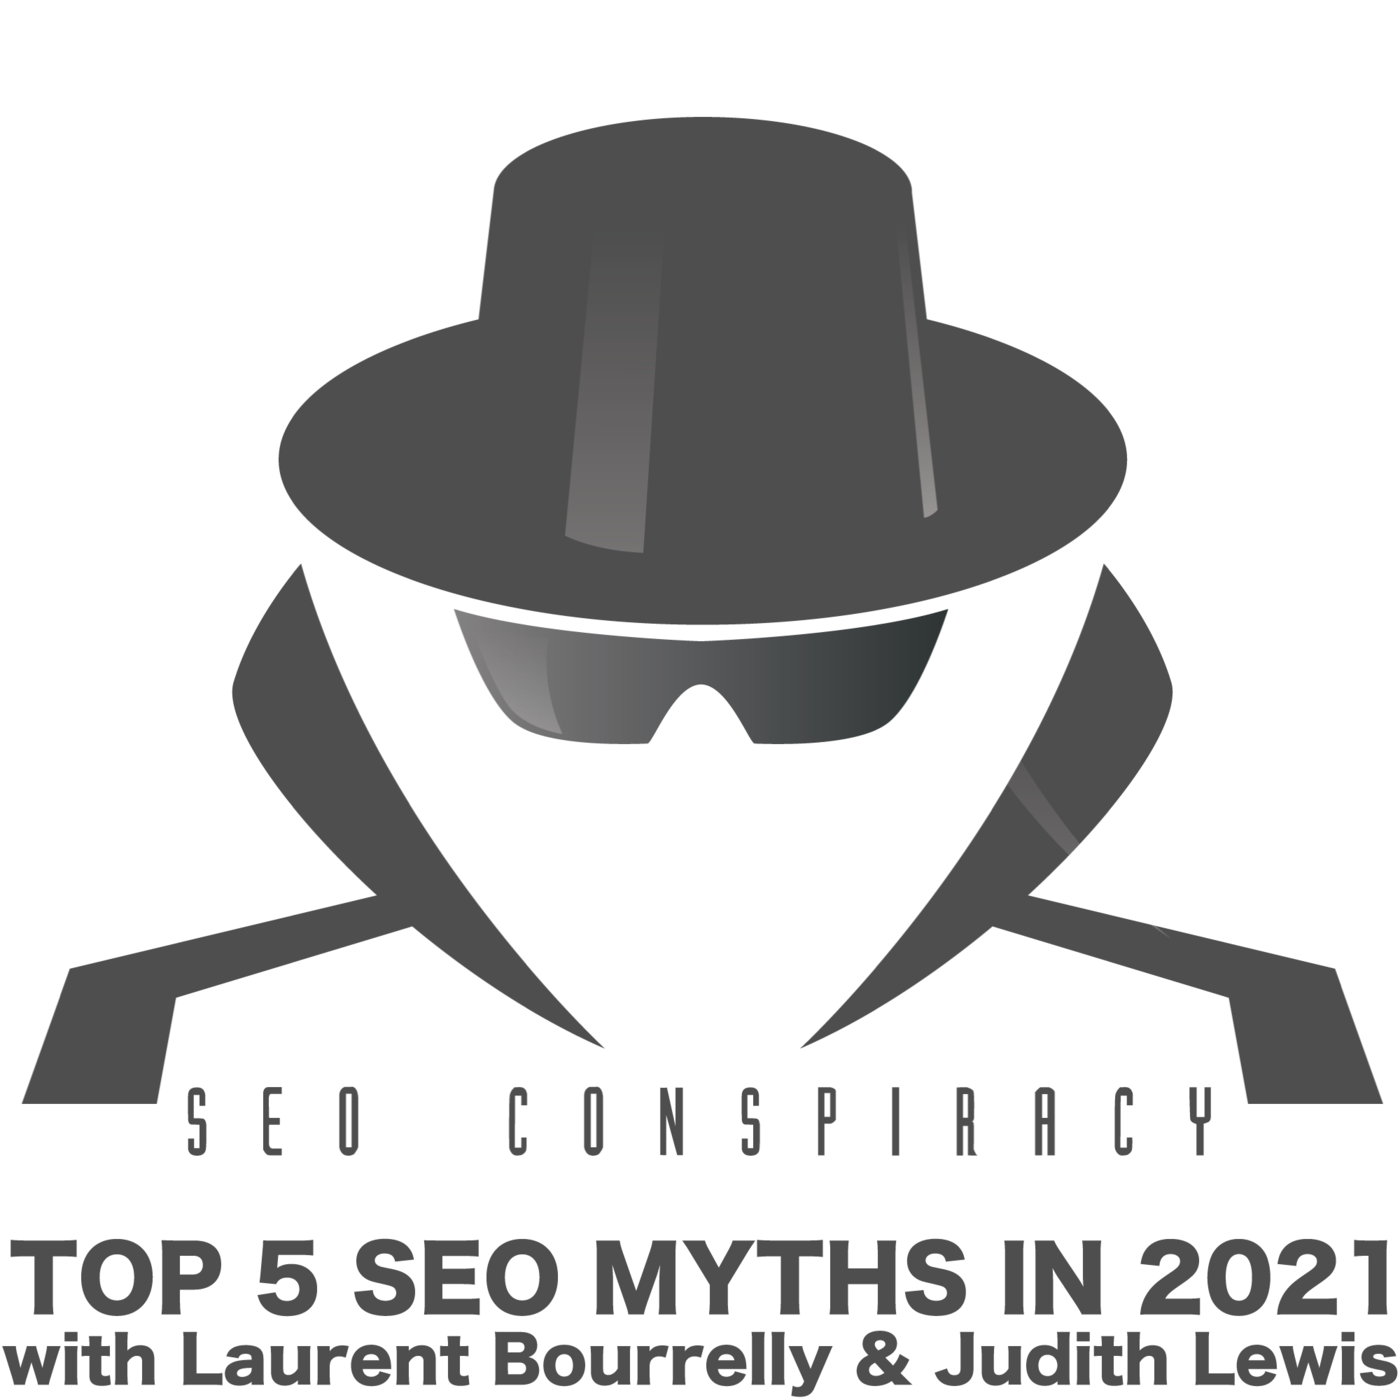 Top 5 SEO Myths in 2021 - SEO Conspiracy S02E13